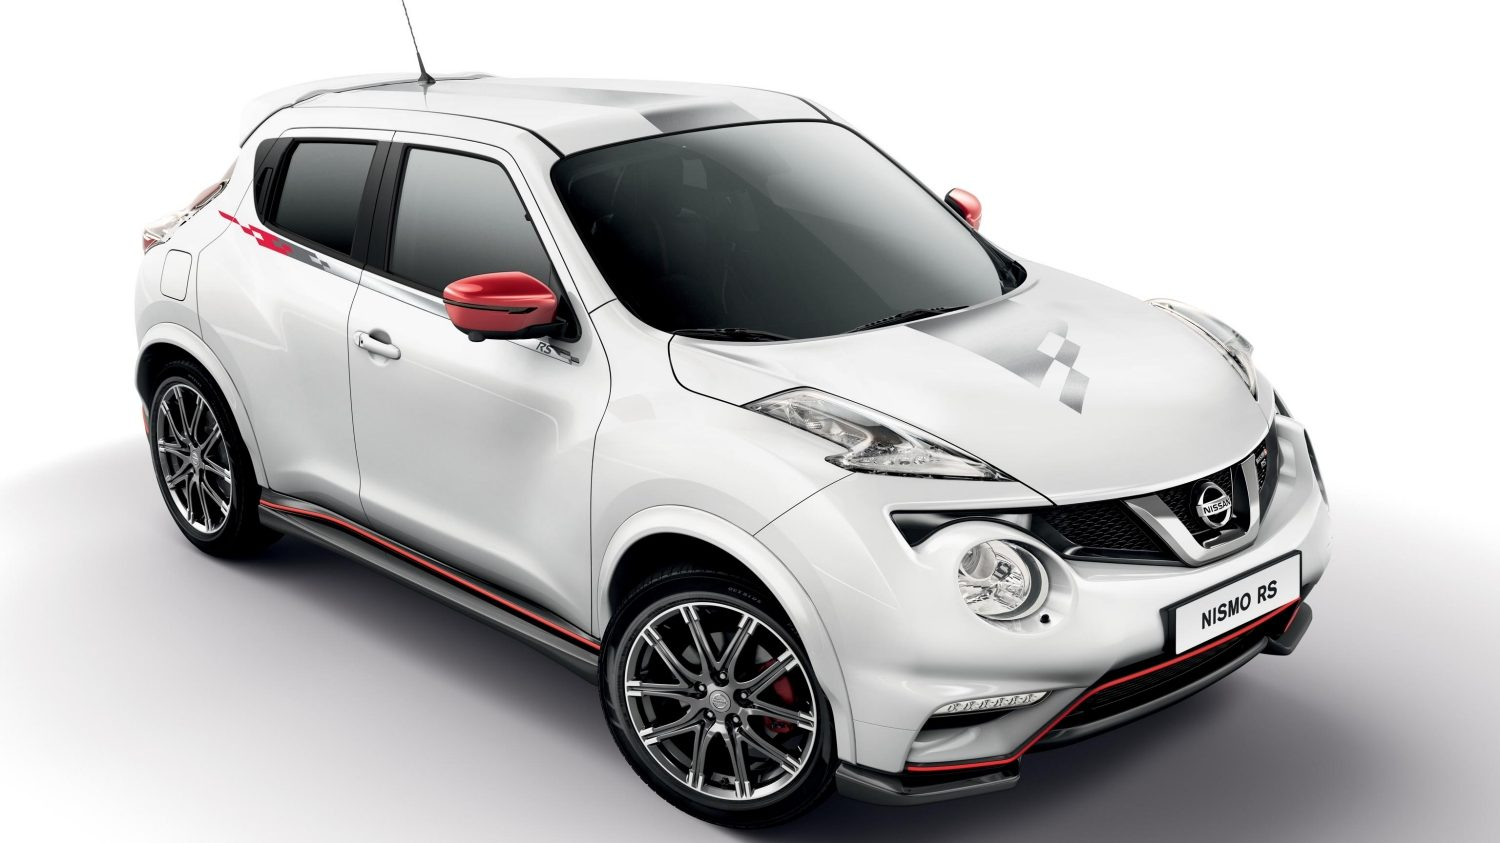 Nissan Juke Nismo RS - Styling - 3/4 front view